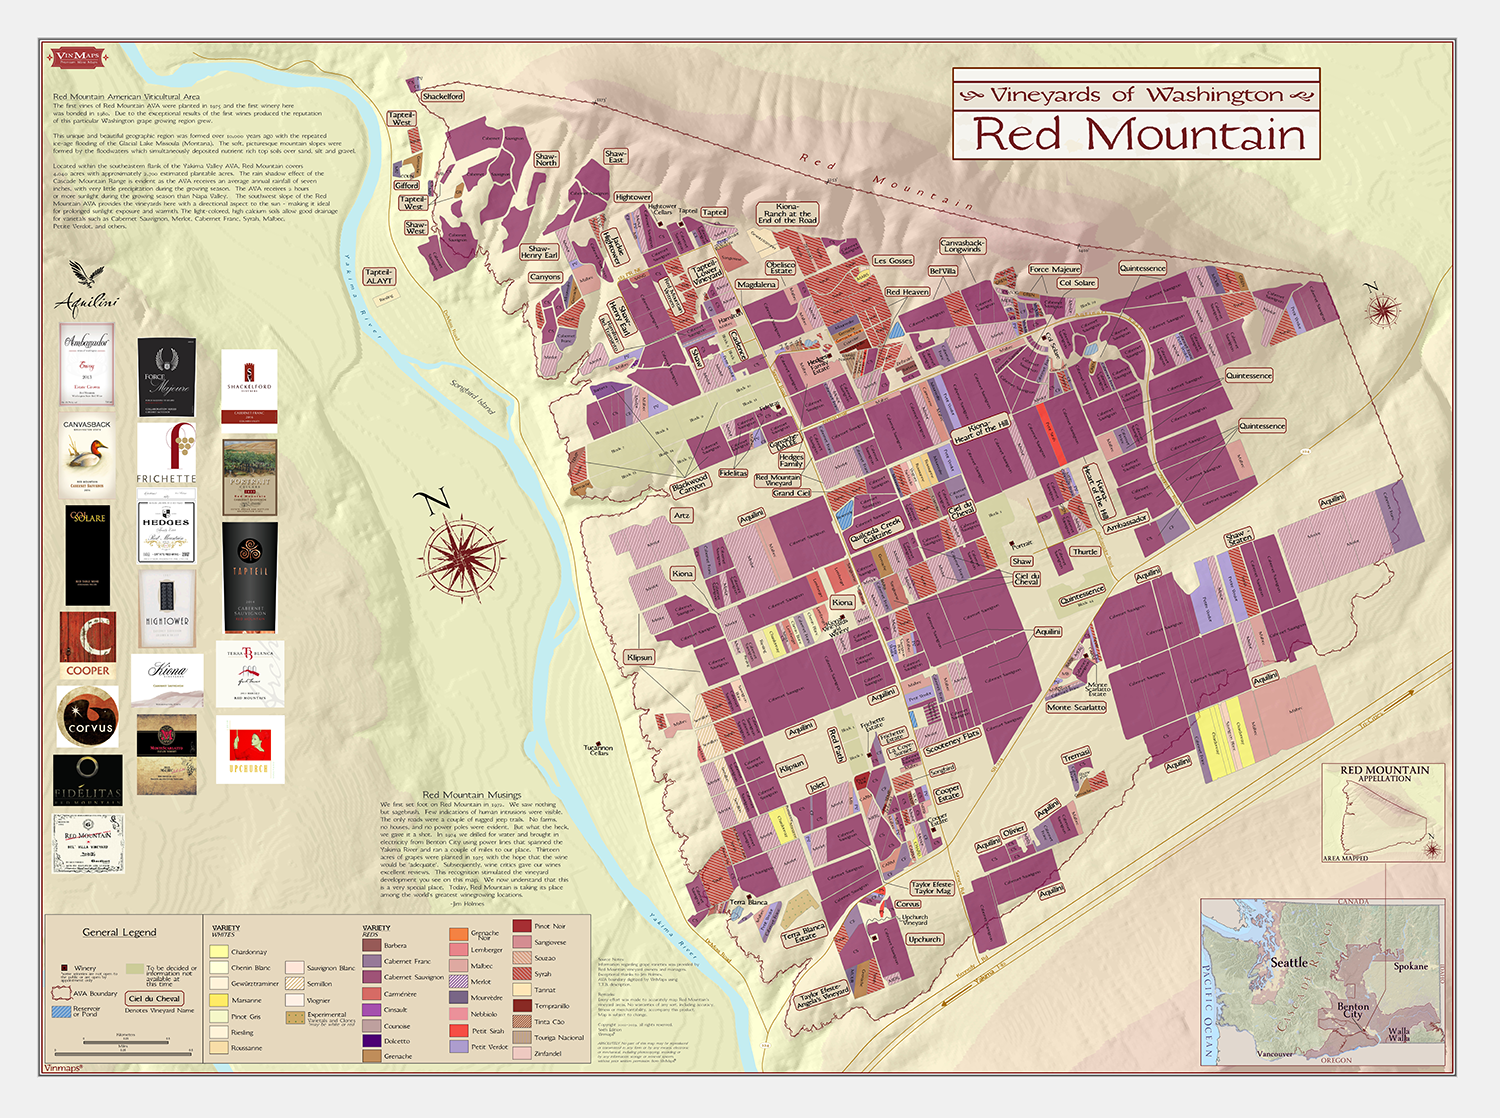 Washington Vineyards Map: Red Mountain – Sixth Edition on map of spain and portugal wine, blank map of french wine regions, districts of italy wine,